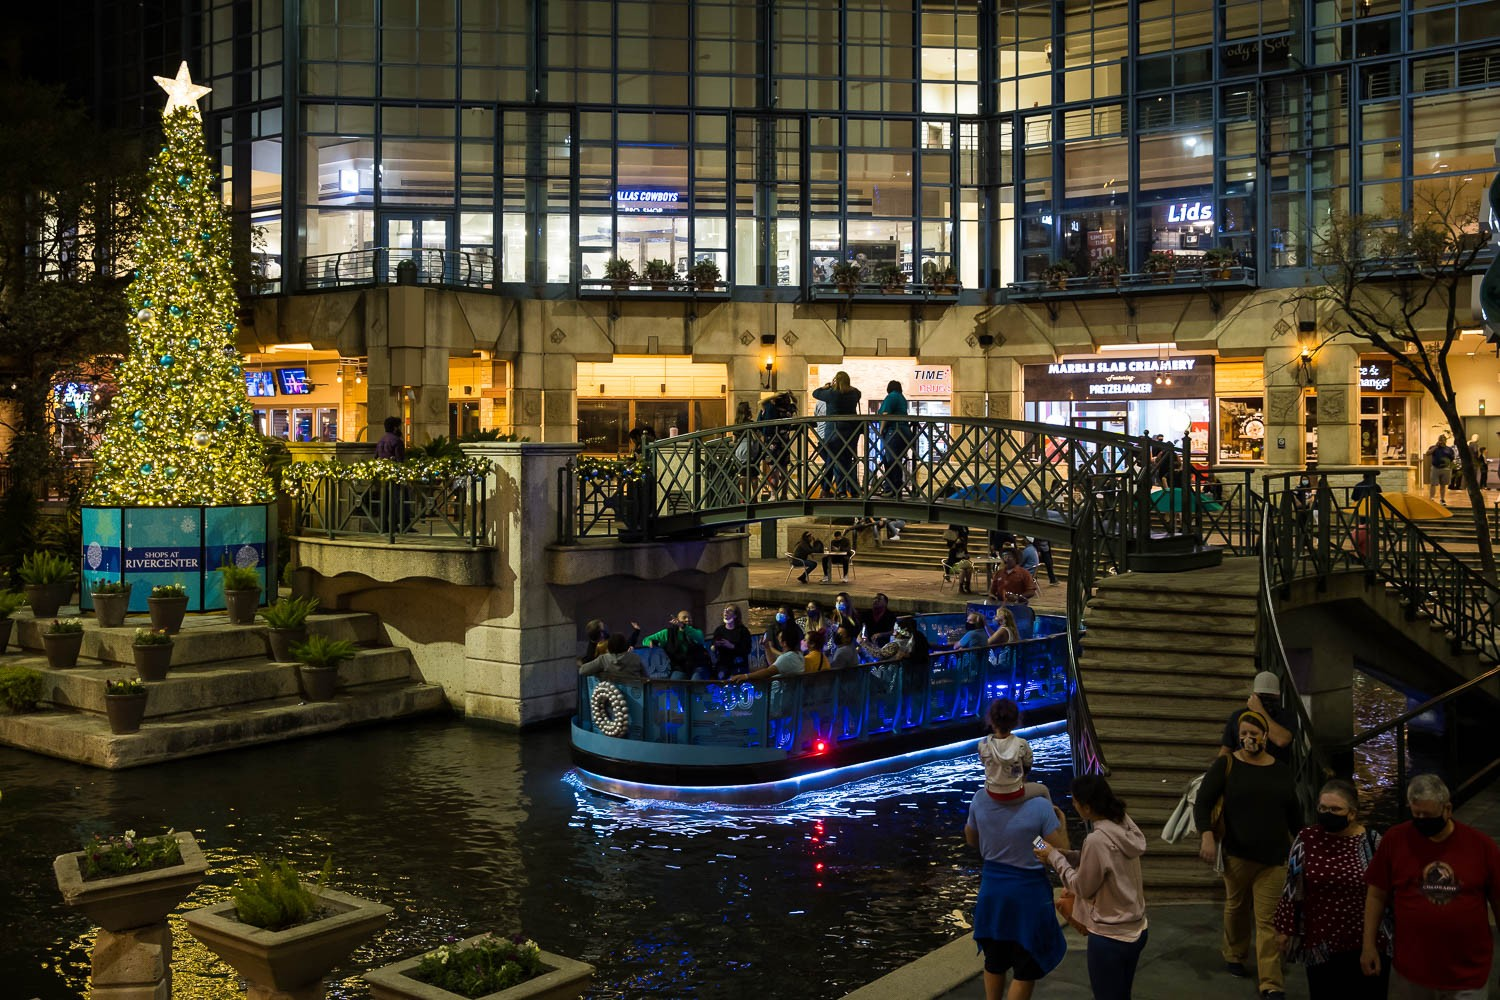 People take in the River Walk at Rivercenter on Nov. 26, 2020. Photo by Stephanie Marquez | Heron contributor